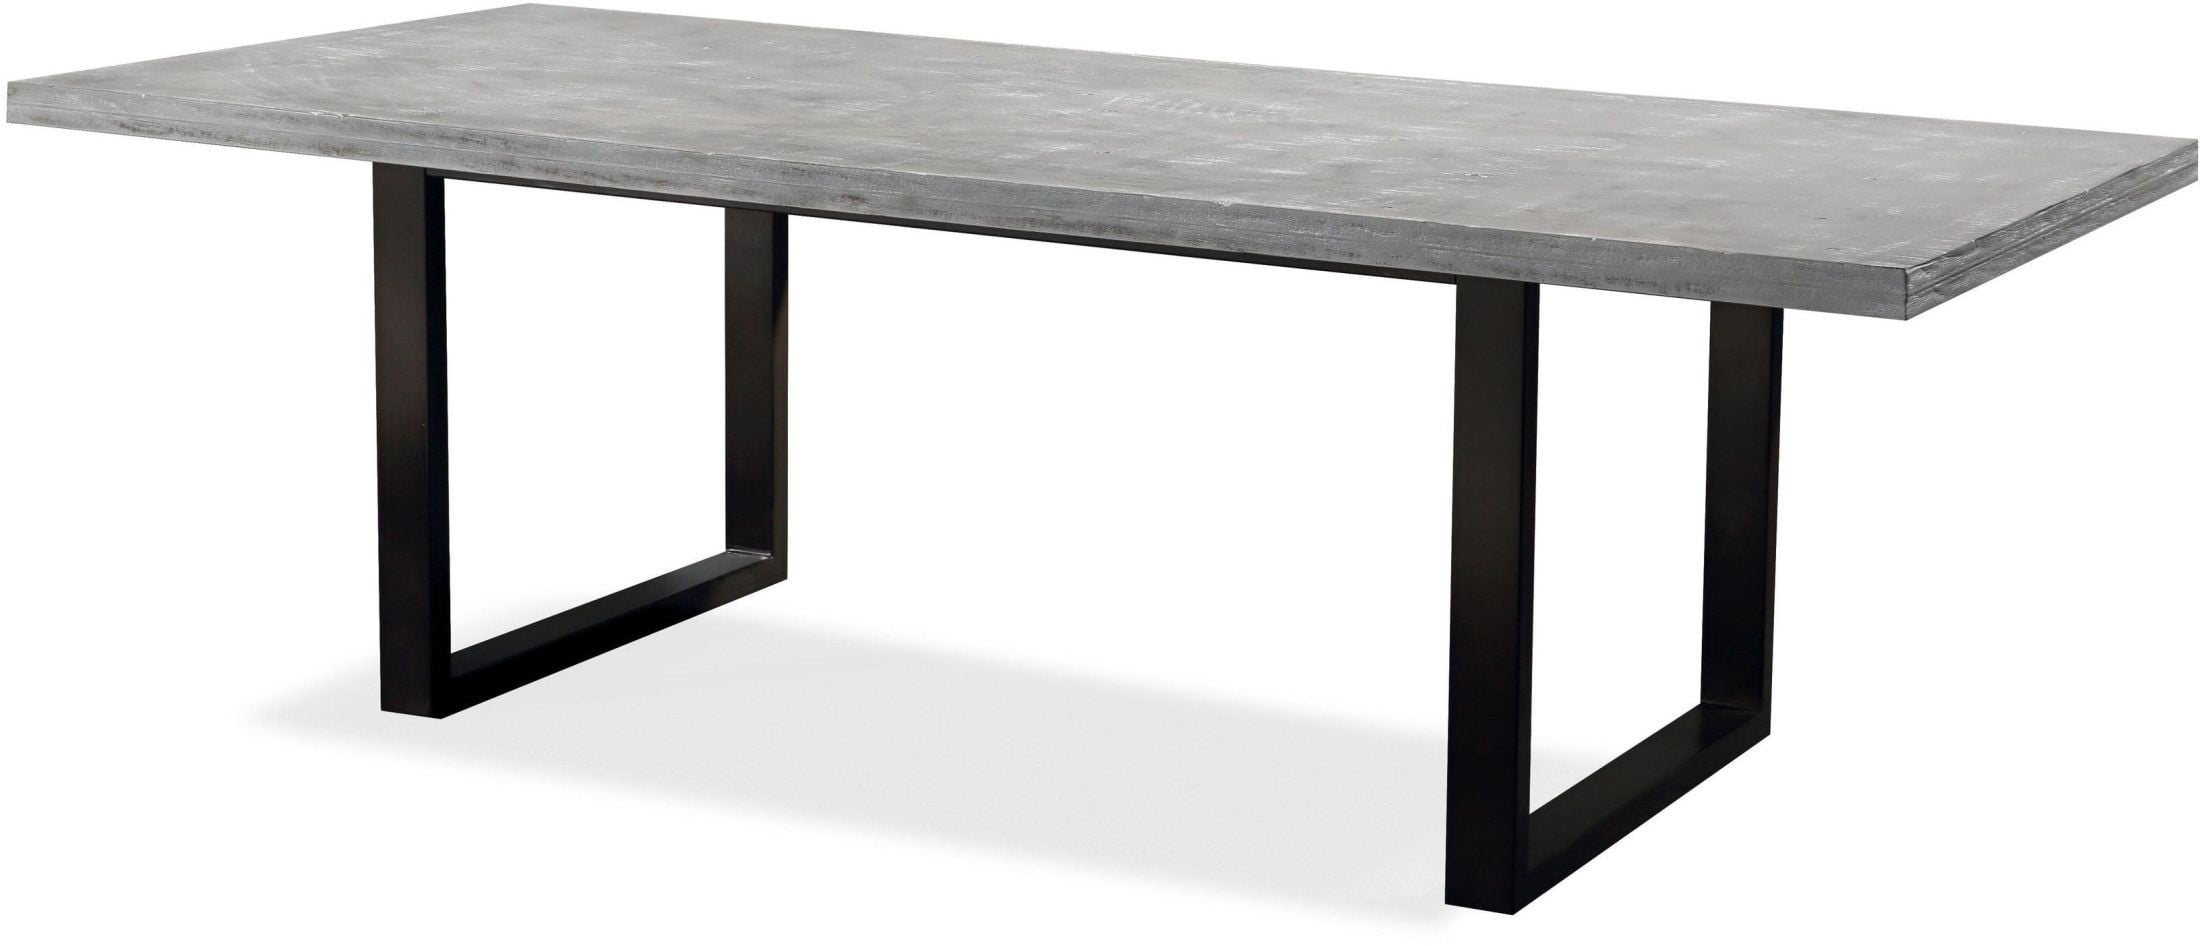 Urban Light Concrete Dining Table from TOV